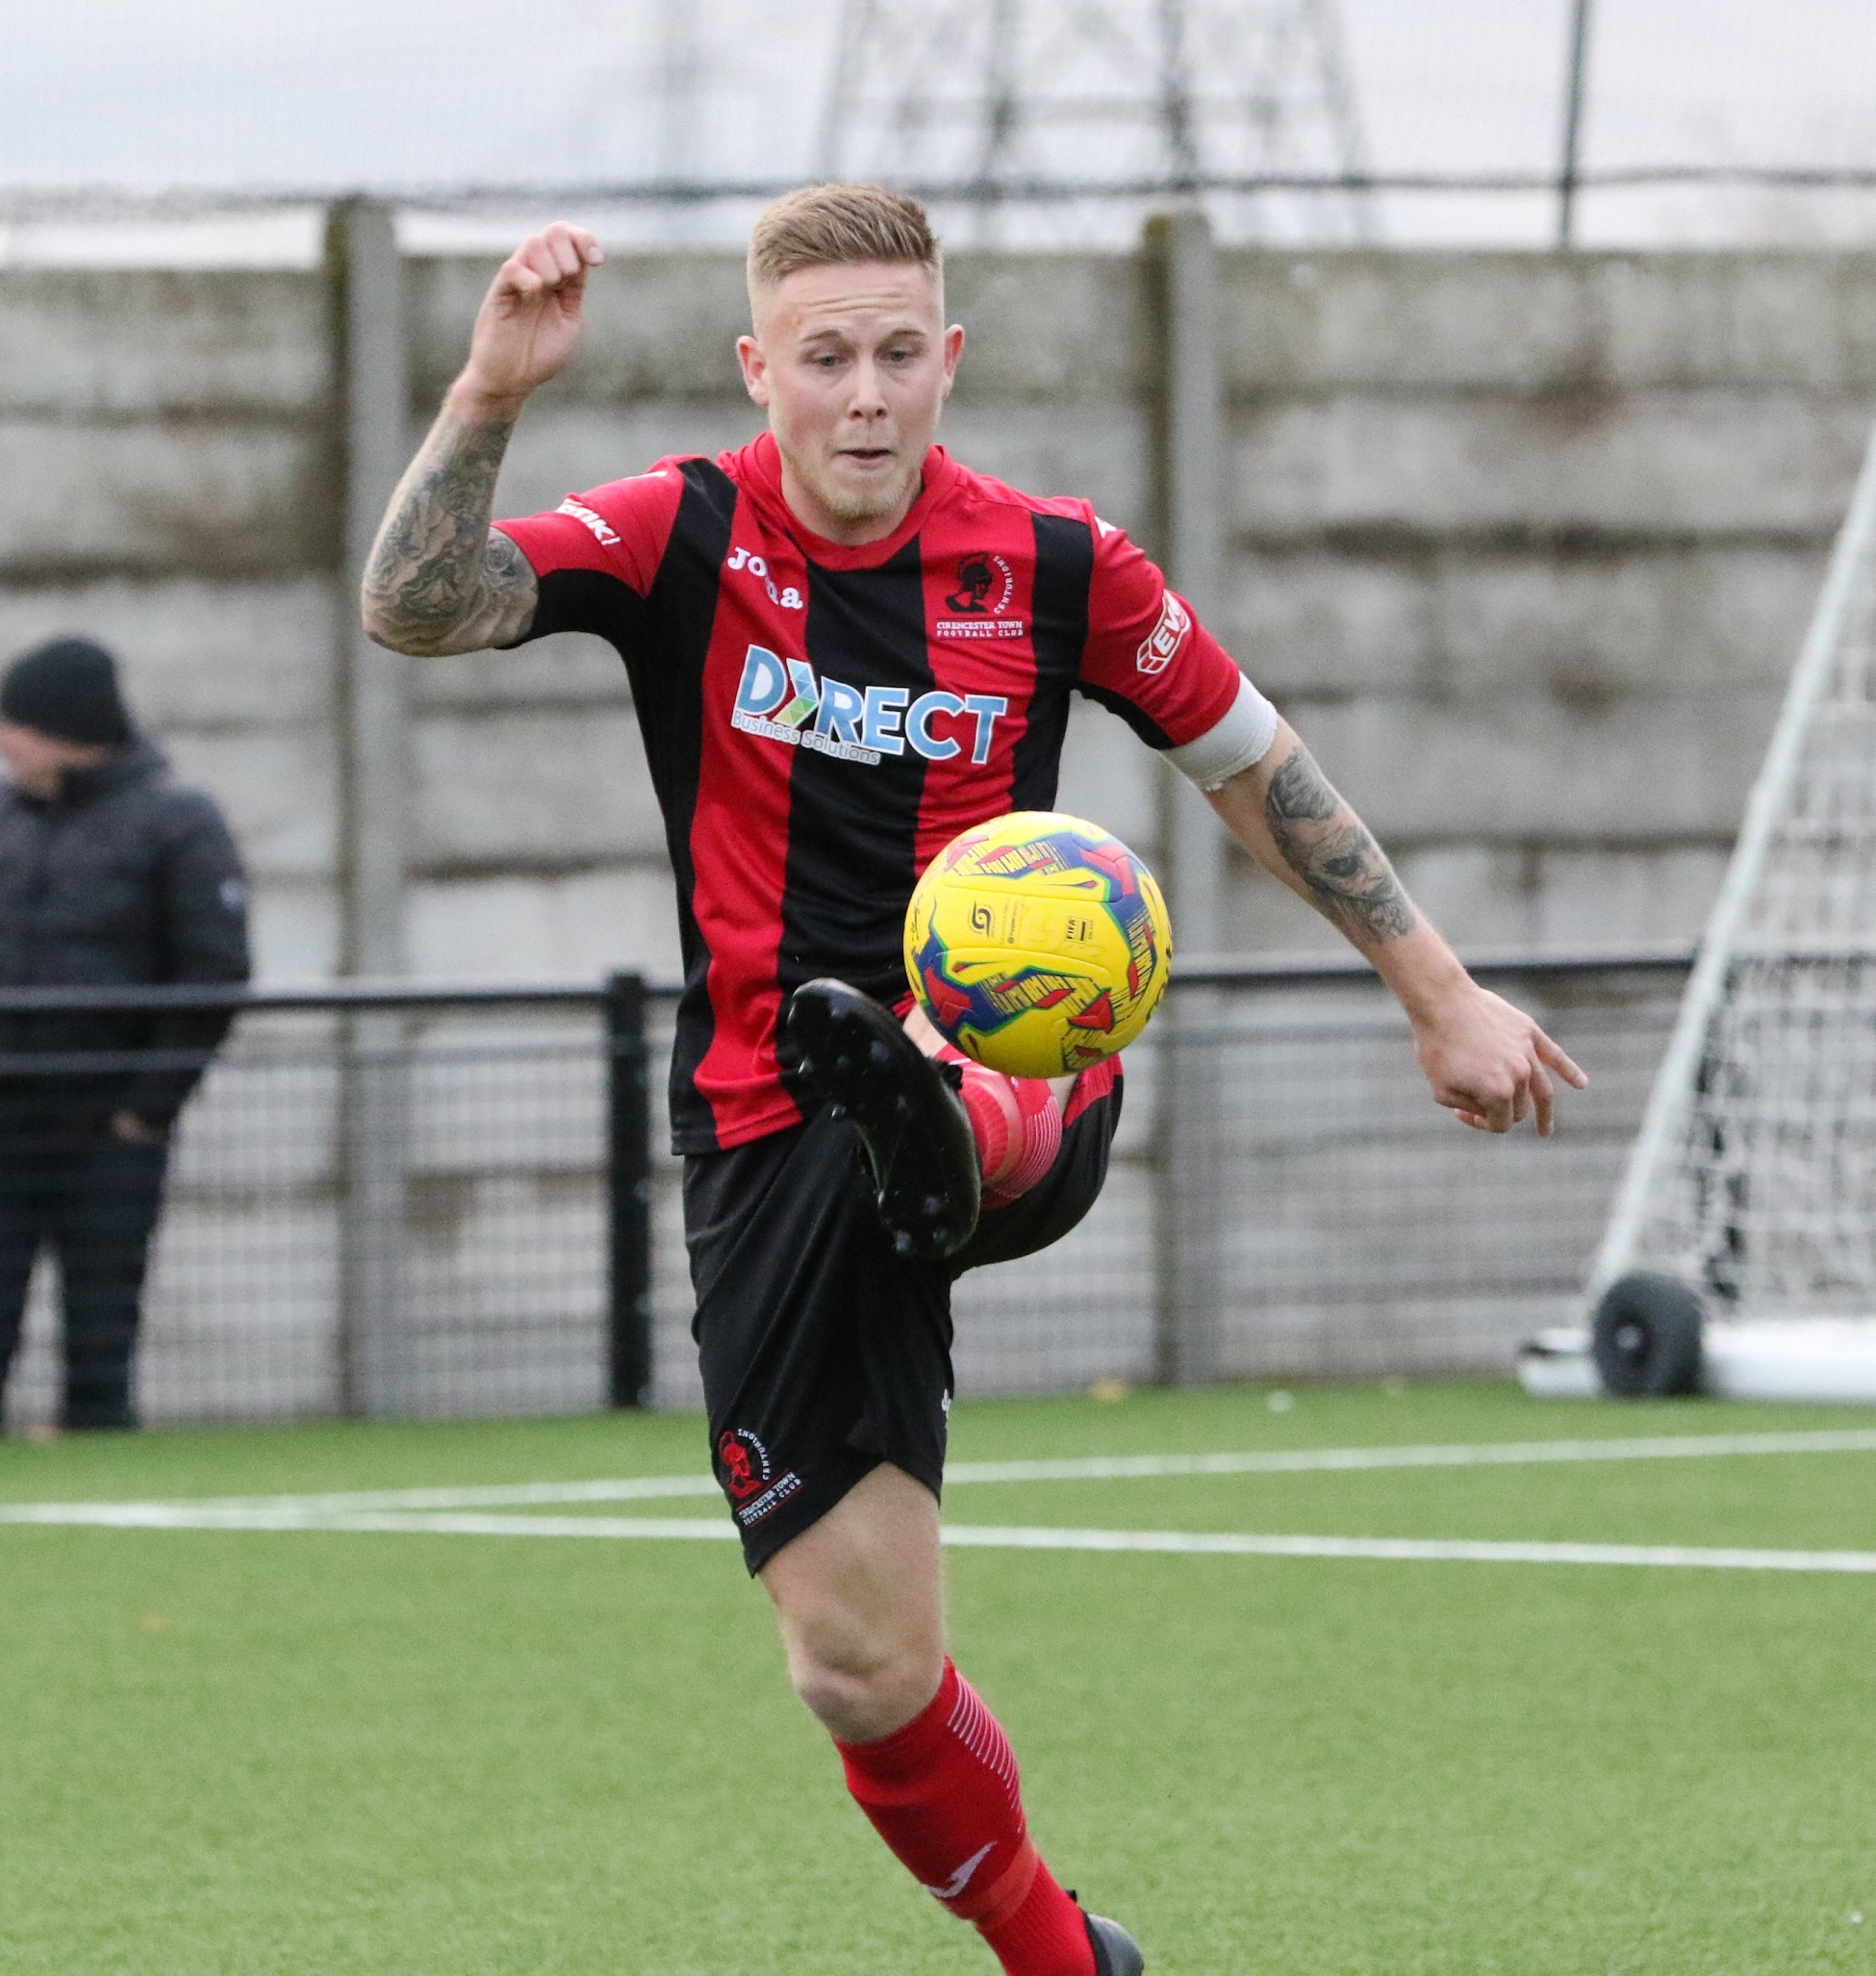 Aidan Bennett scored his 50th senior goal for Cirencester. Picture: Steve Rolfe